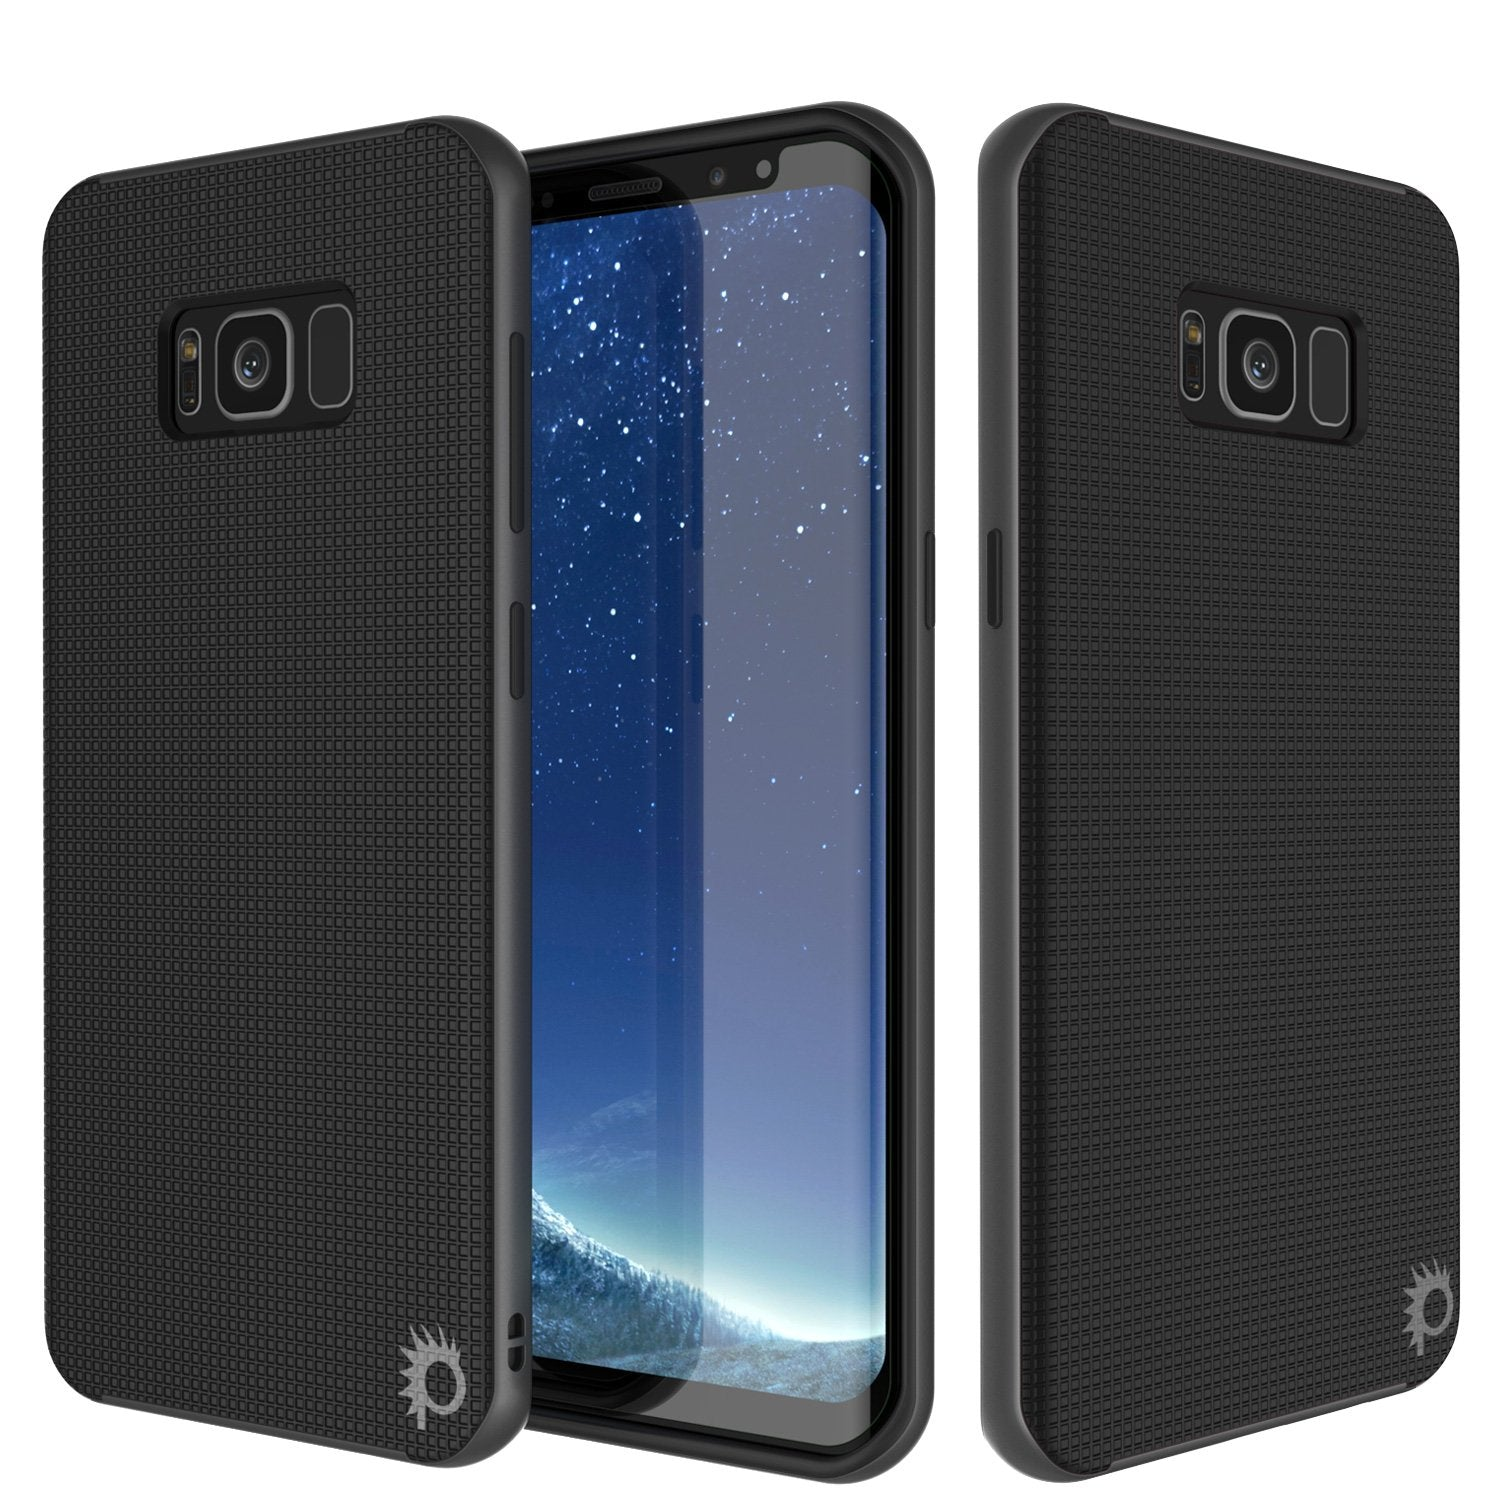 Galaxy S8 Case, PunkCase [Stealth Series] Hybrid 3-Piece Shockproof Dual Layer Cover [Non-Slip] [Soft TPU + PC Bumper] with PUNKSHIELD Screen Protector for Samsung S8 Edge [Grey]